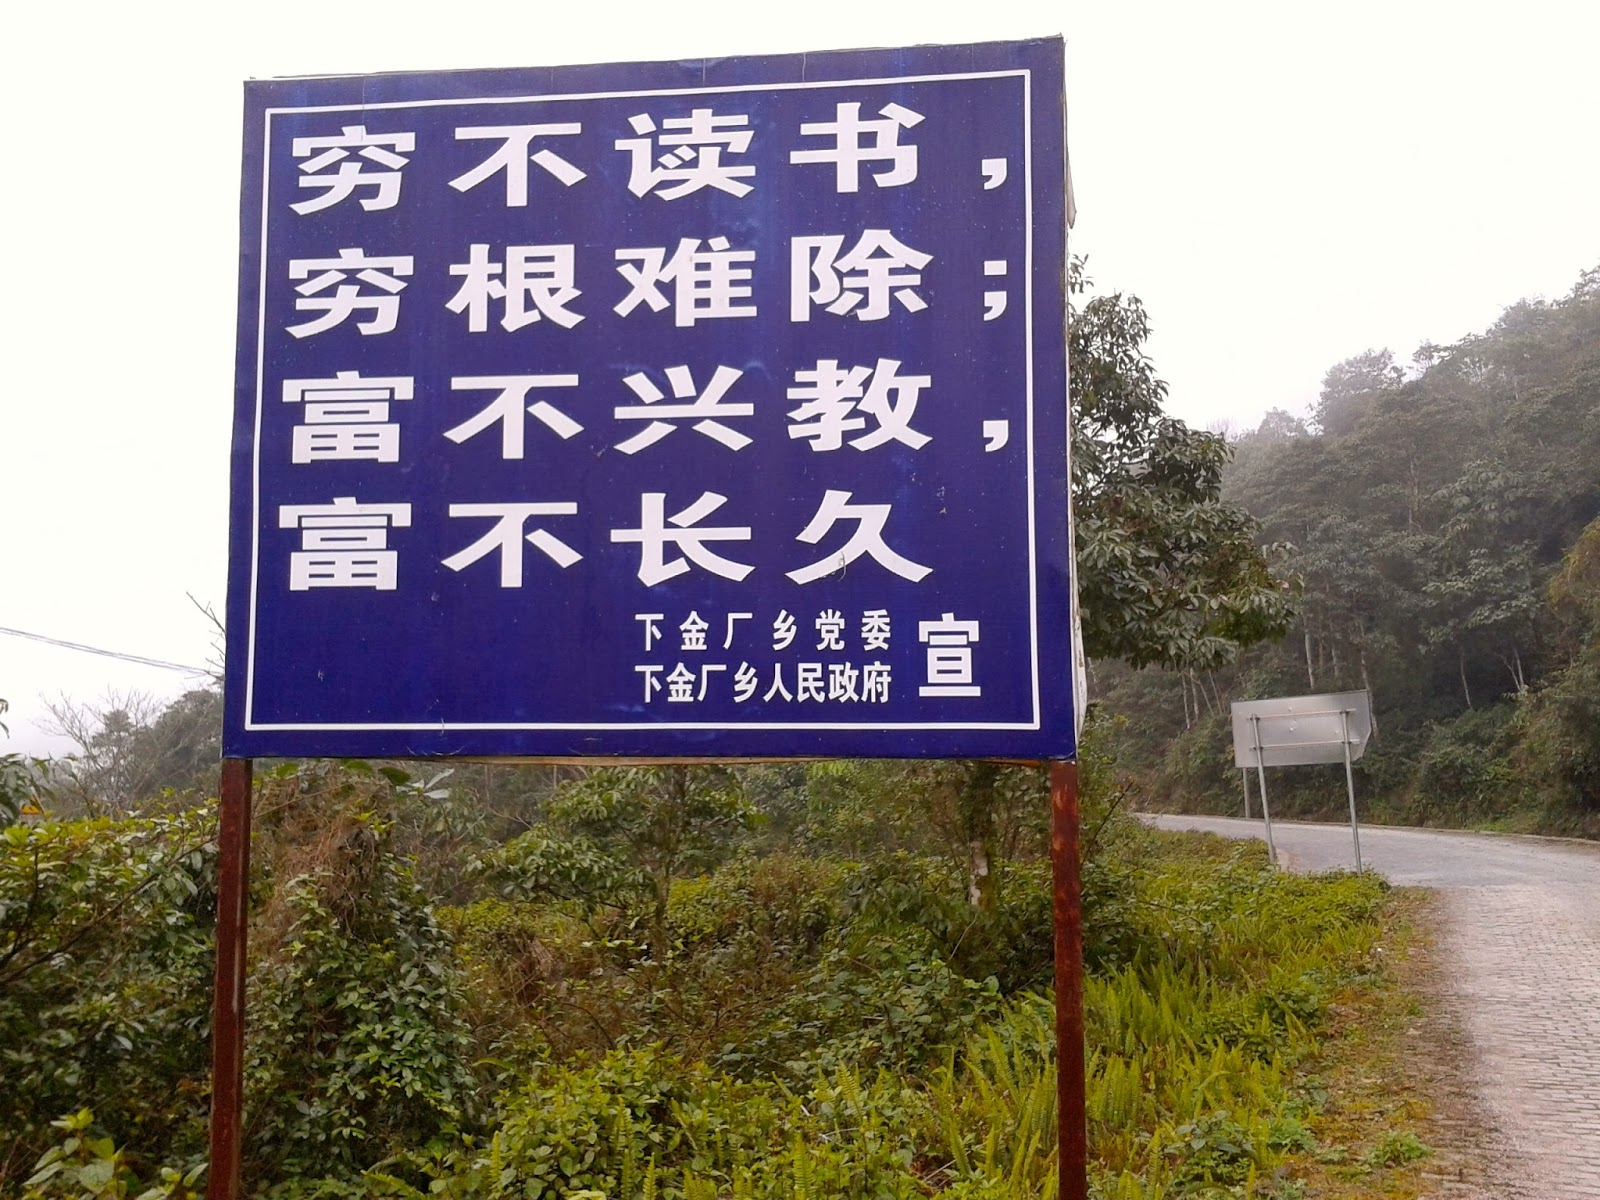 Chinese propaganda billboard about poverty